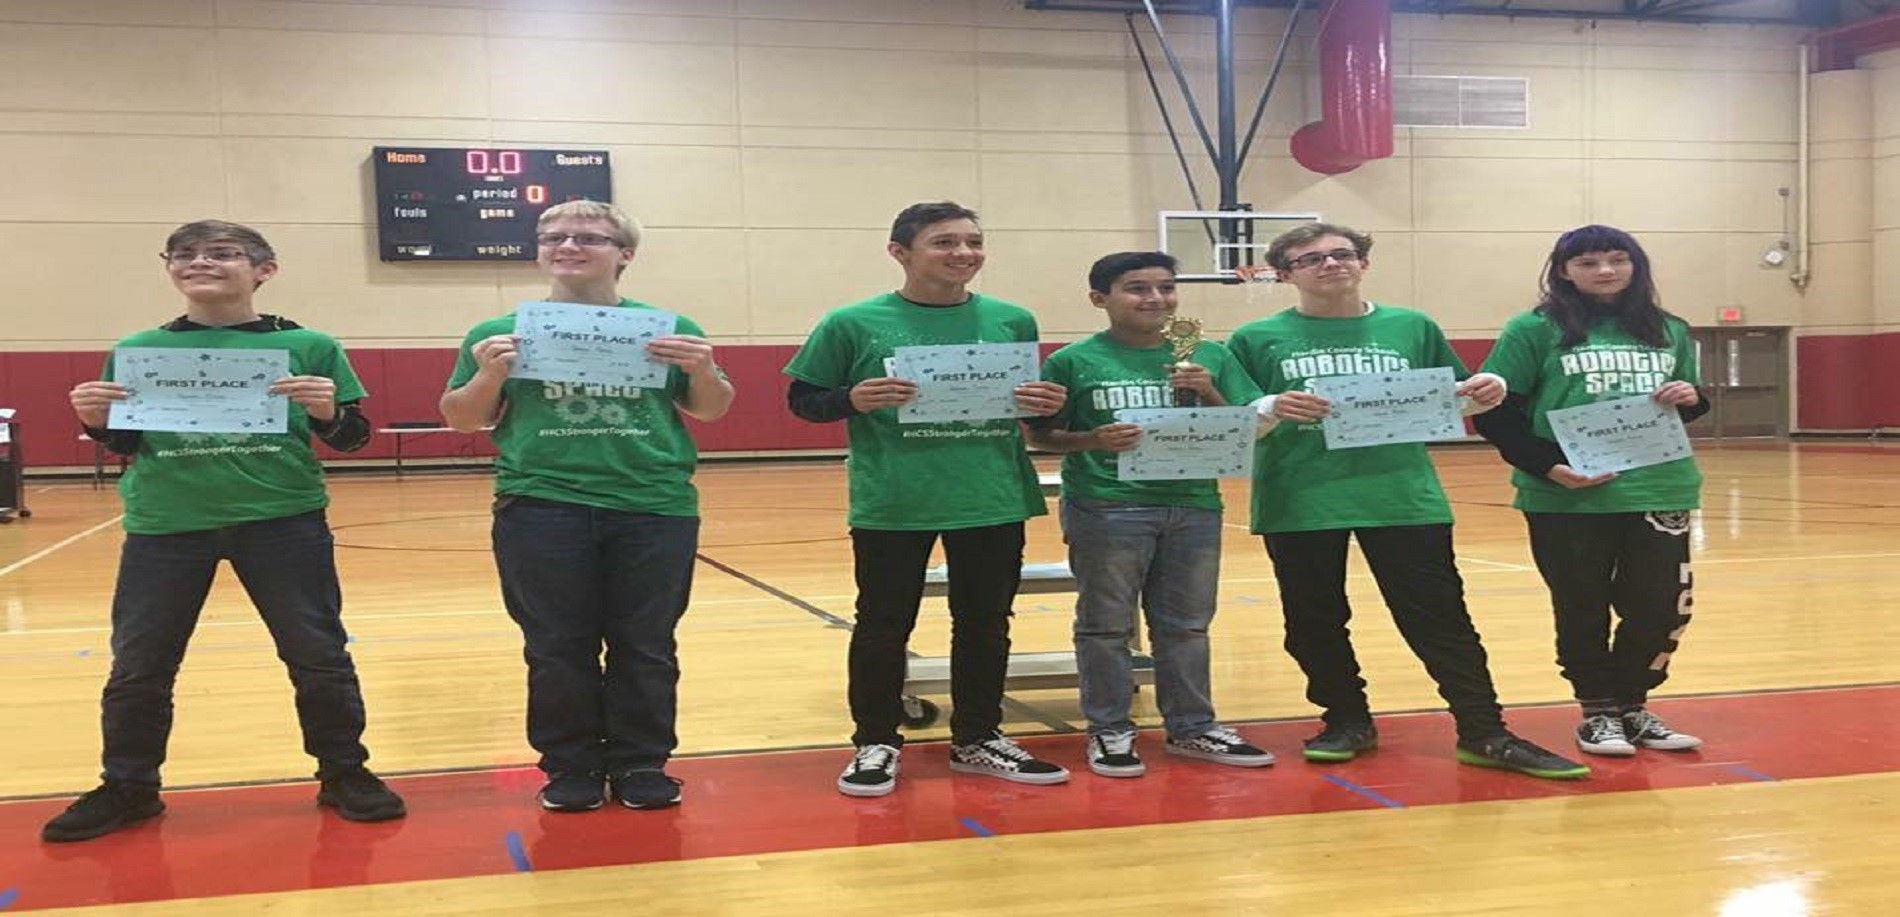 Robotics Team wins 1st Place